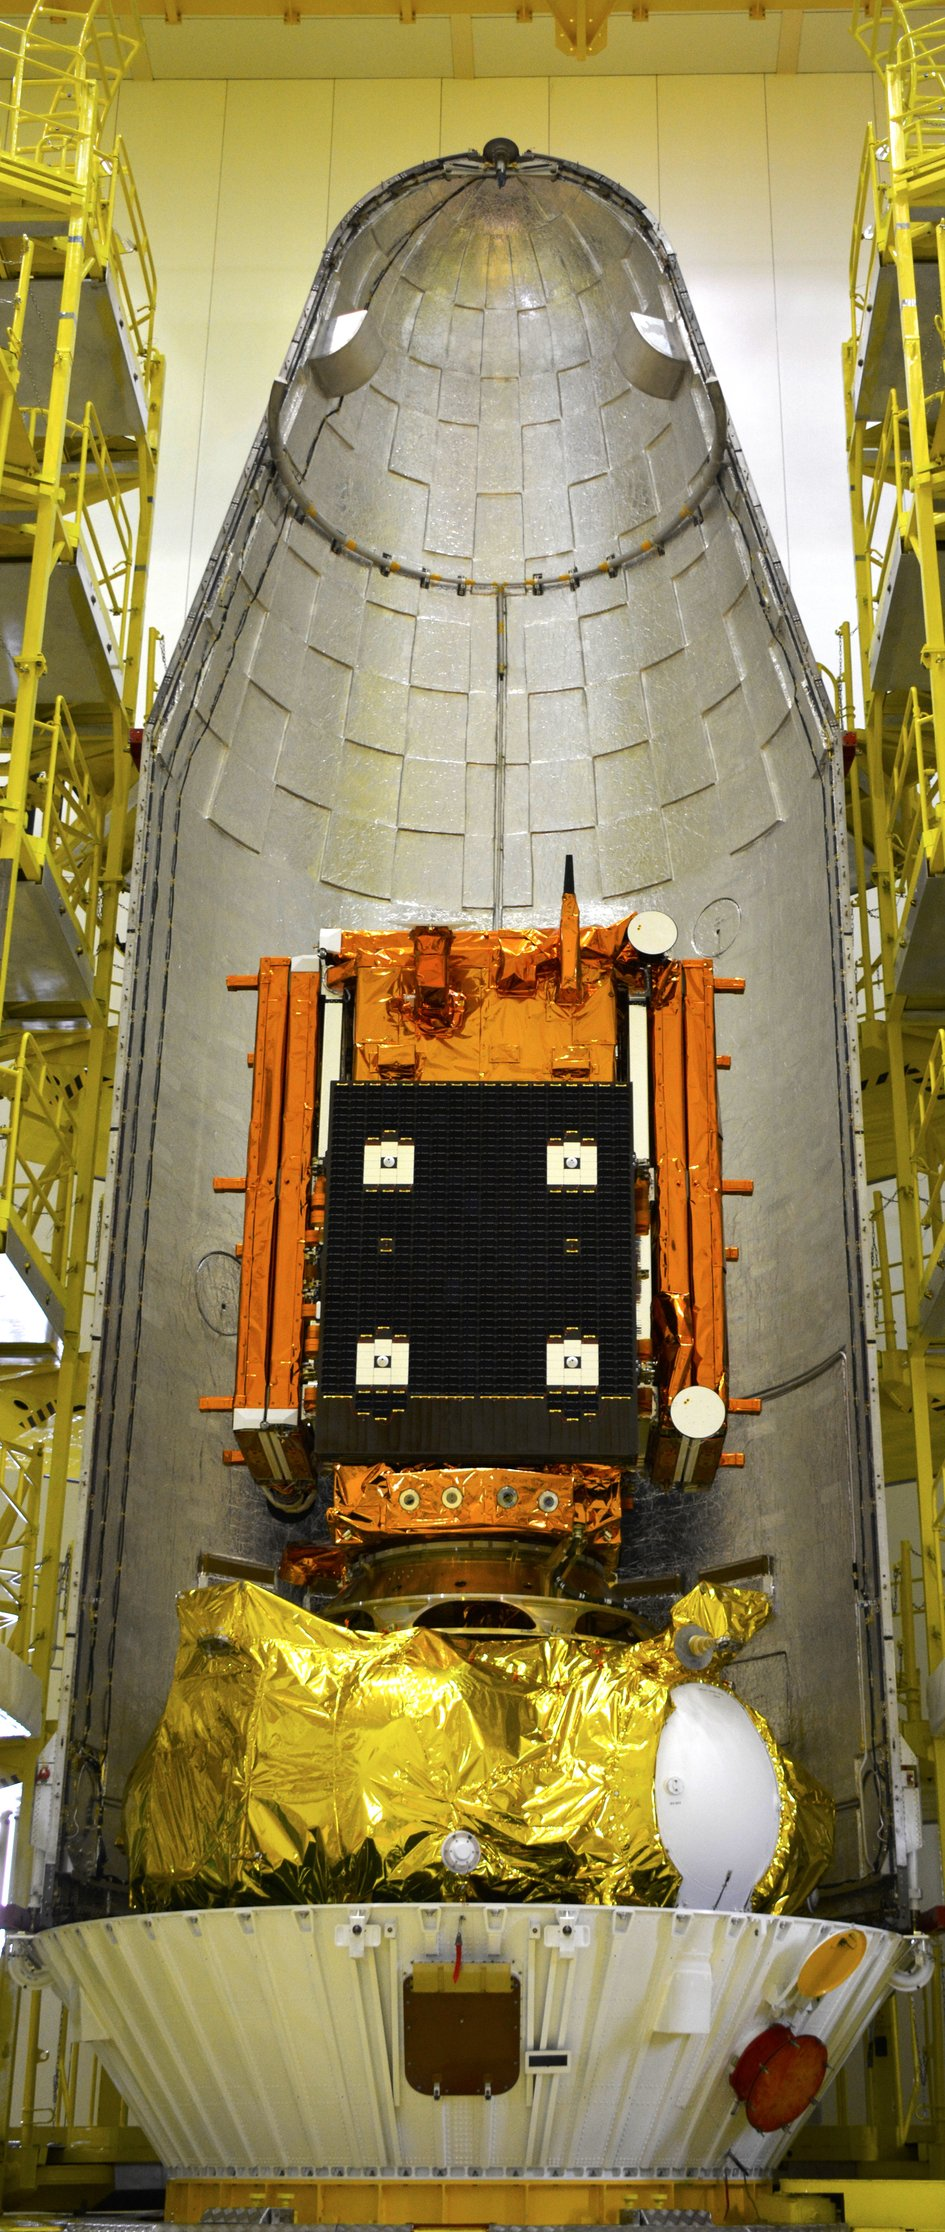 Sentinel-1A encapsulation